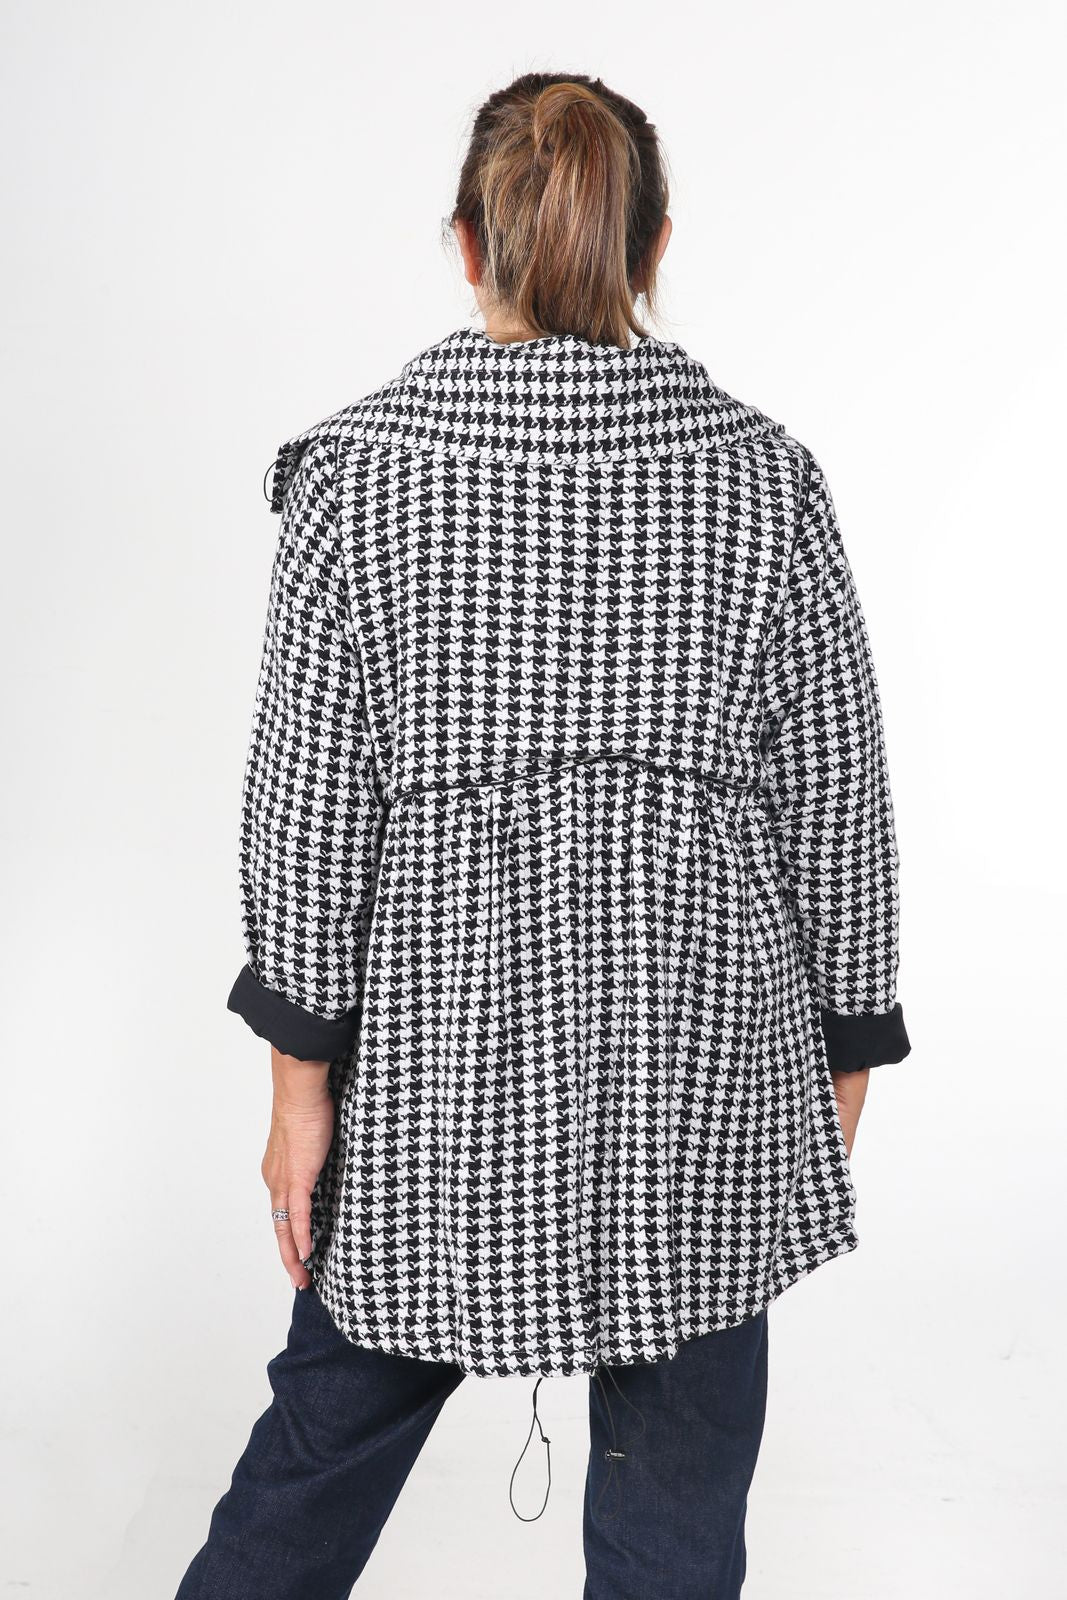 Austyn | Women's Houndstooth Jacket